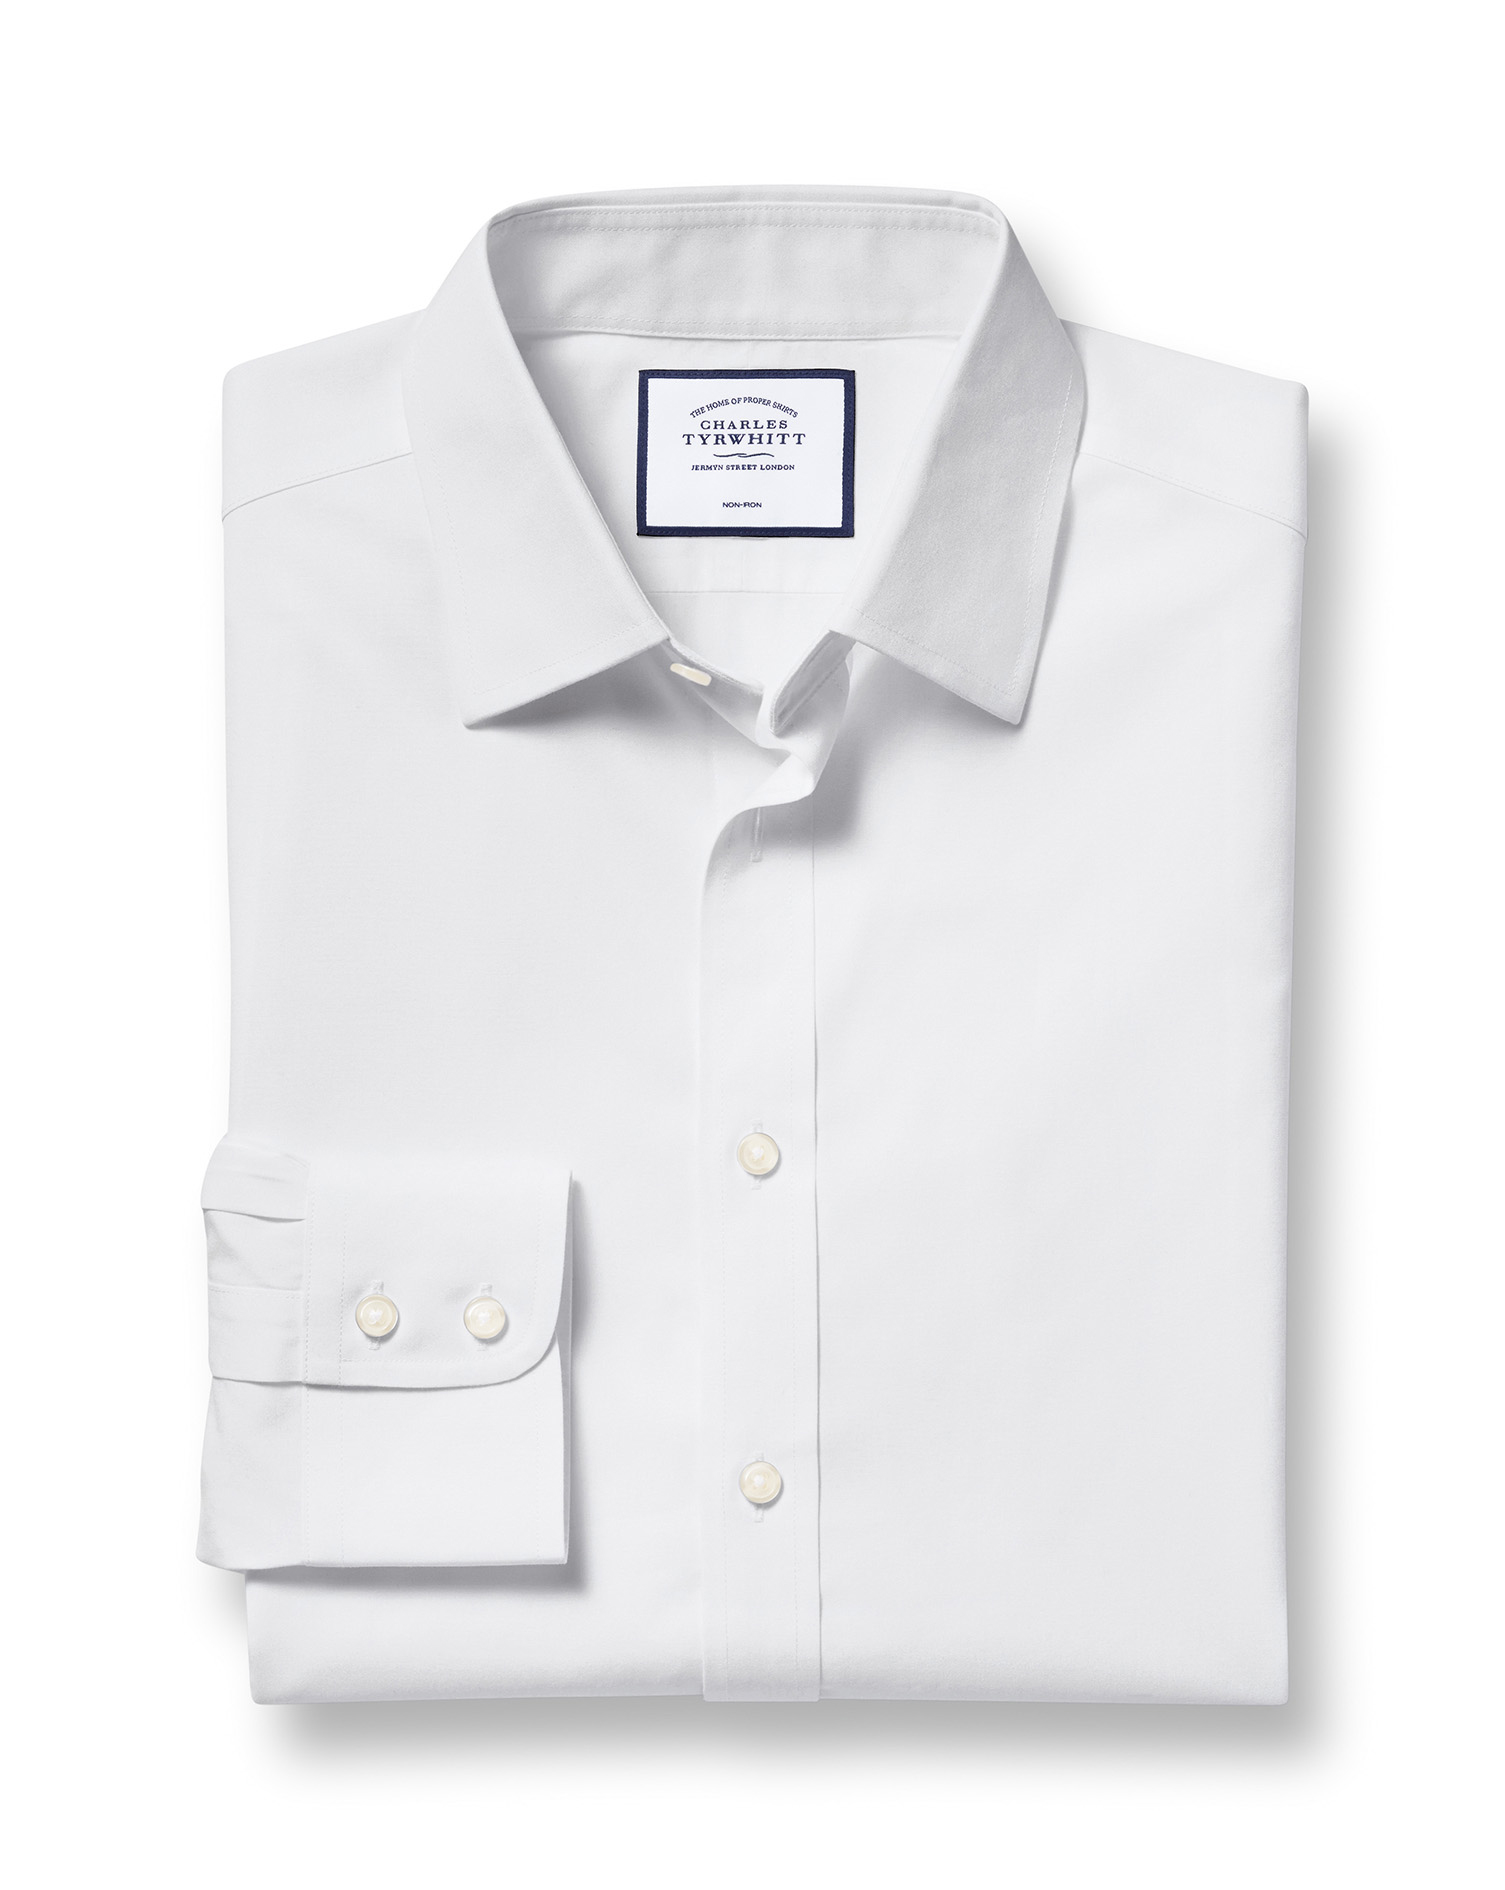 Extra Slim Fit Non-Iron Poplin White Cotton Formal Shirt Single Cuff Size 14.5/33 by Charles Tyrwhitt from Charles Tyrwhitt